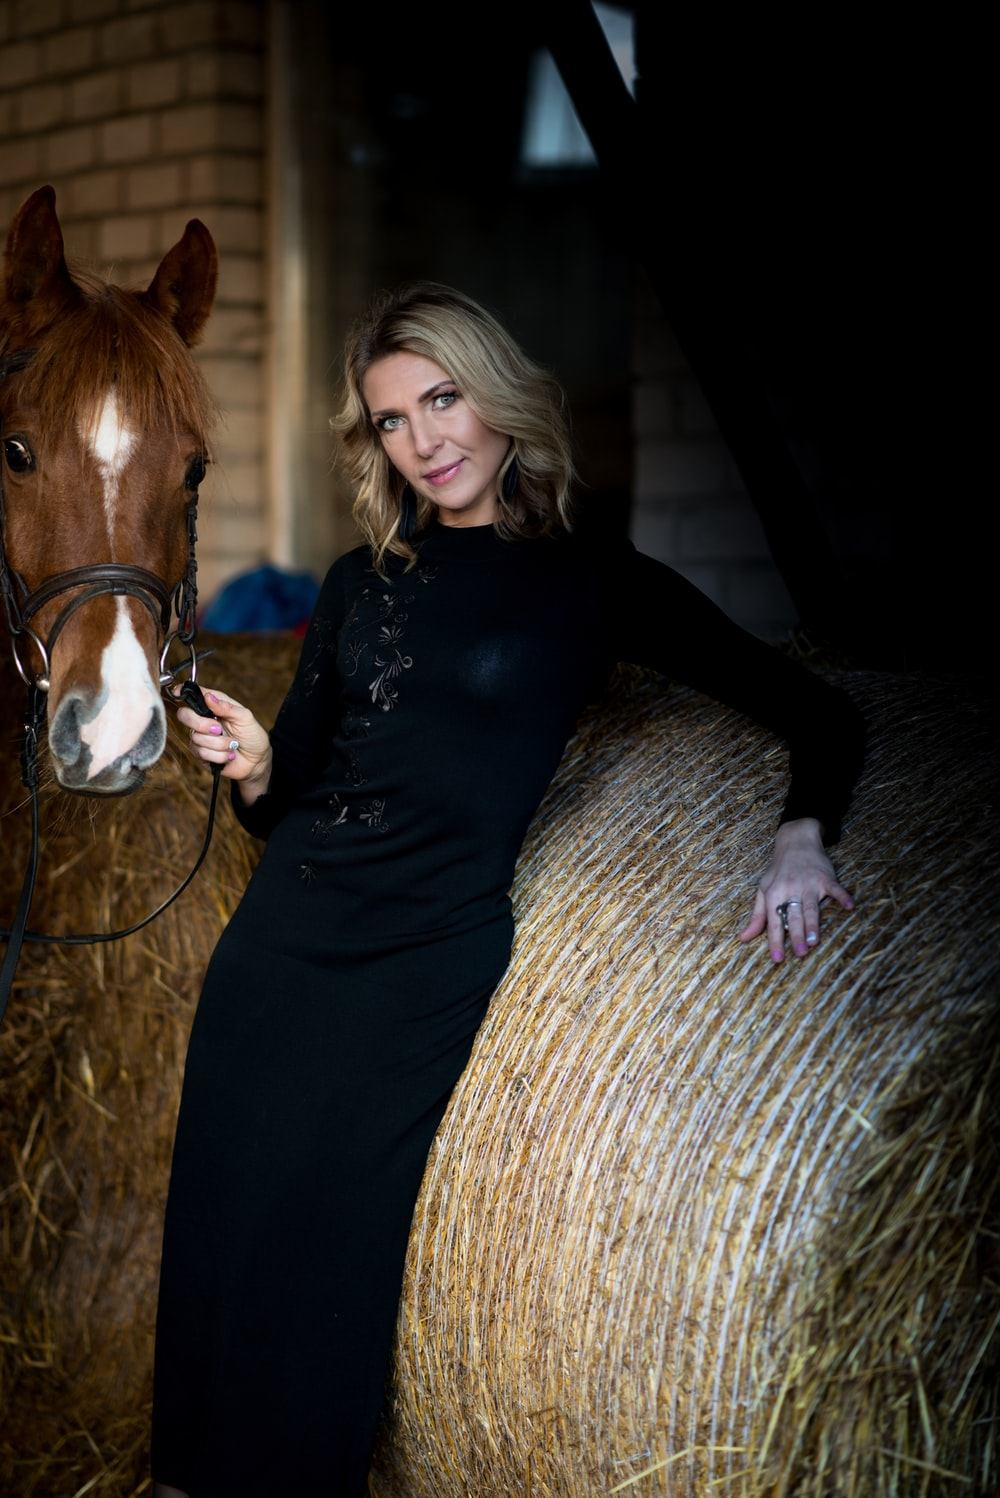 woman holding the horse strap while leaning on hay